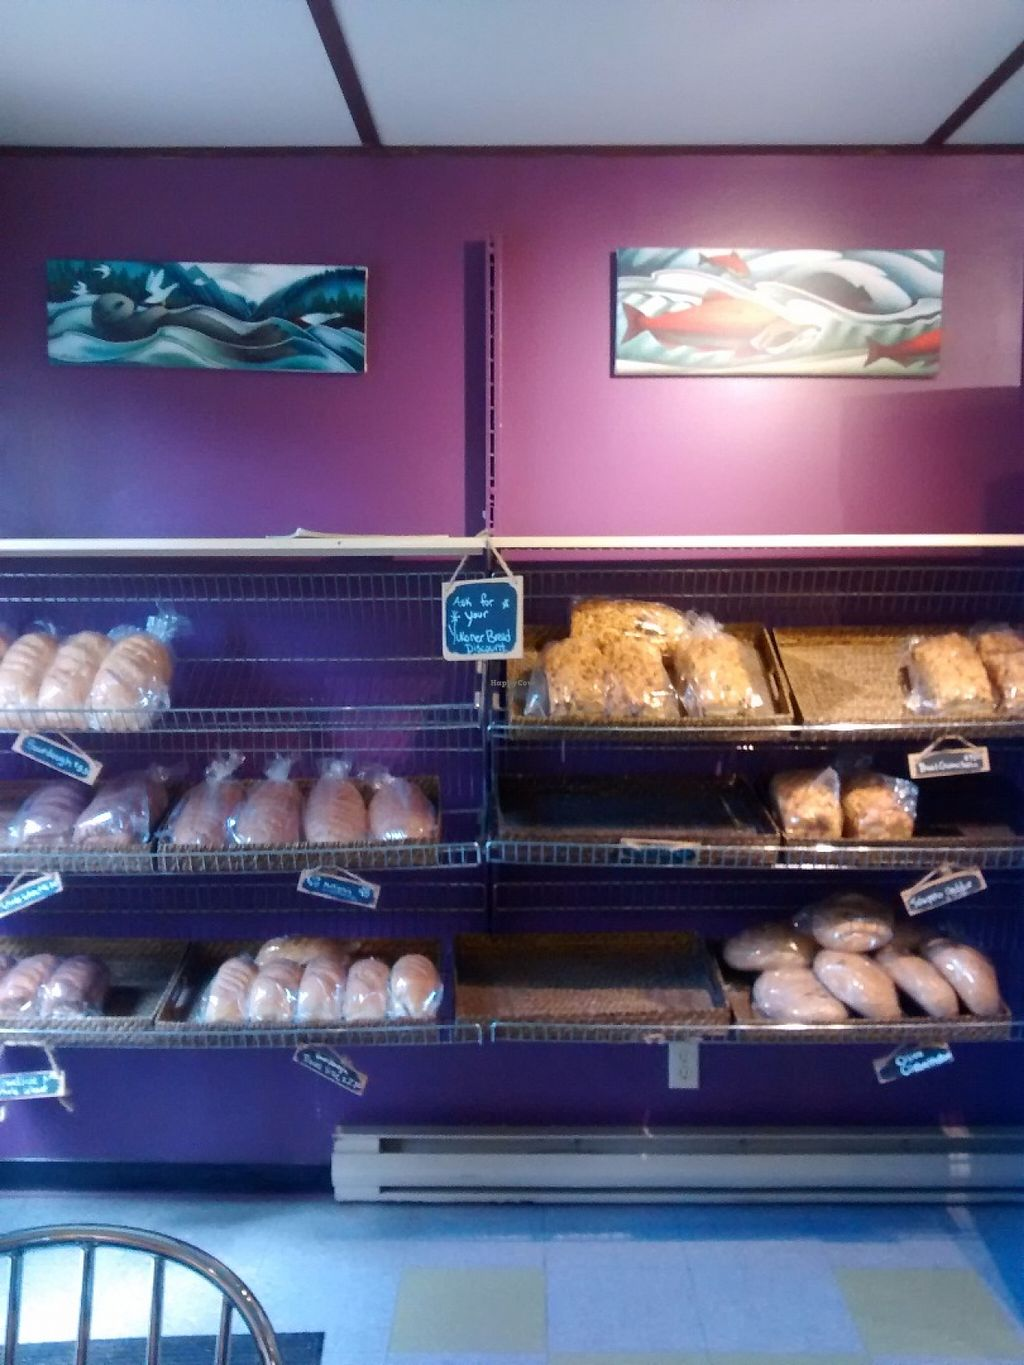 "Photo of Village Bakery and Deli  by <a href=""/members/profile/QuothTheRaven"">QuothTheRaven</a> <br/>Bread <br/> June 23, 2016  - <a href='/contact/abuse/image/58047/155564'>Report</a>"